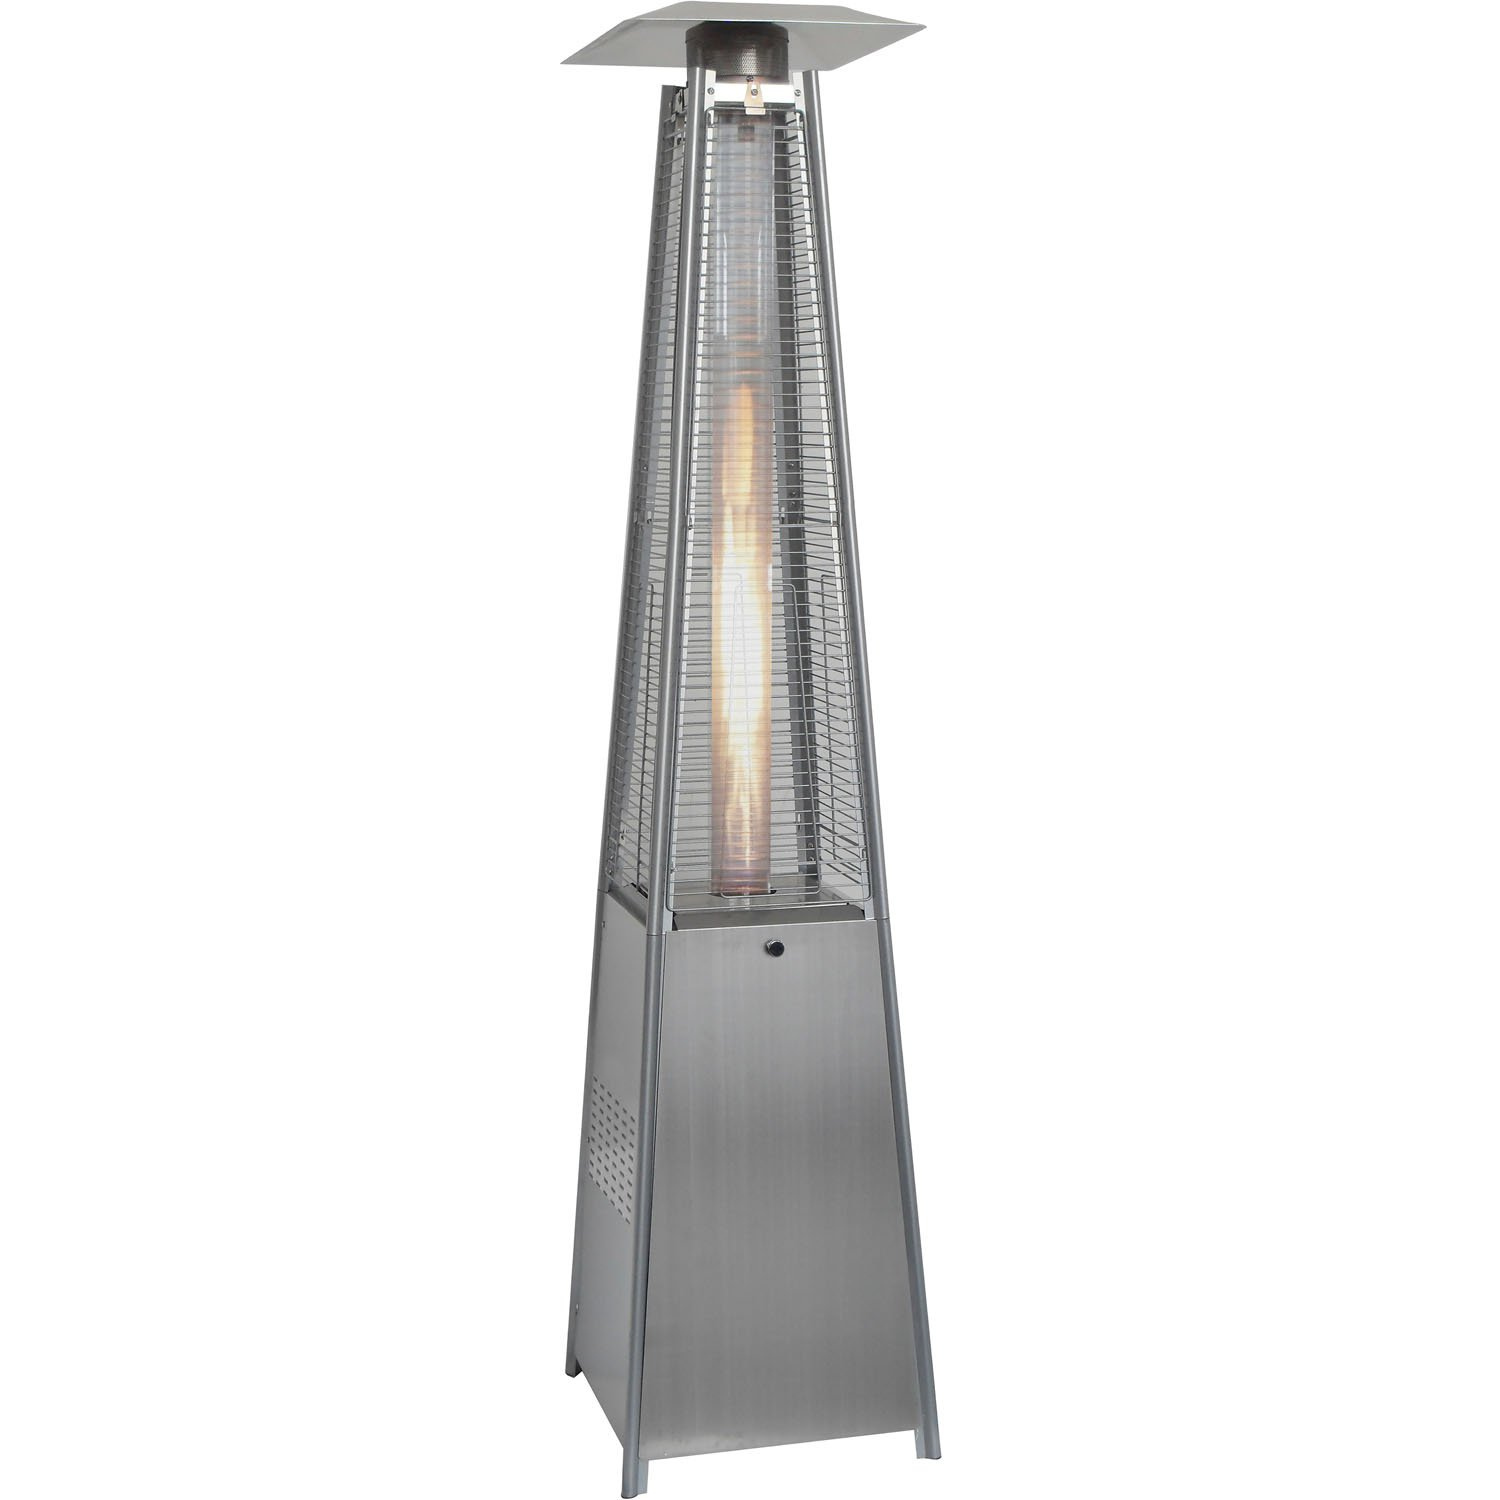 Hanover HAN102SS Portable 7-Ft. 42,000 BTU Pyramid Stainless Steel Propane Patio Heater, 7' by Hanover